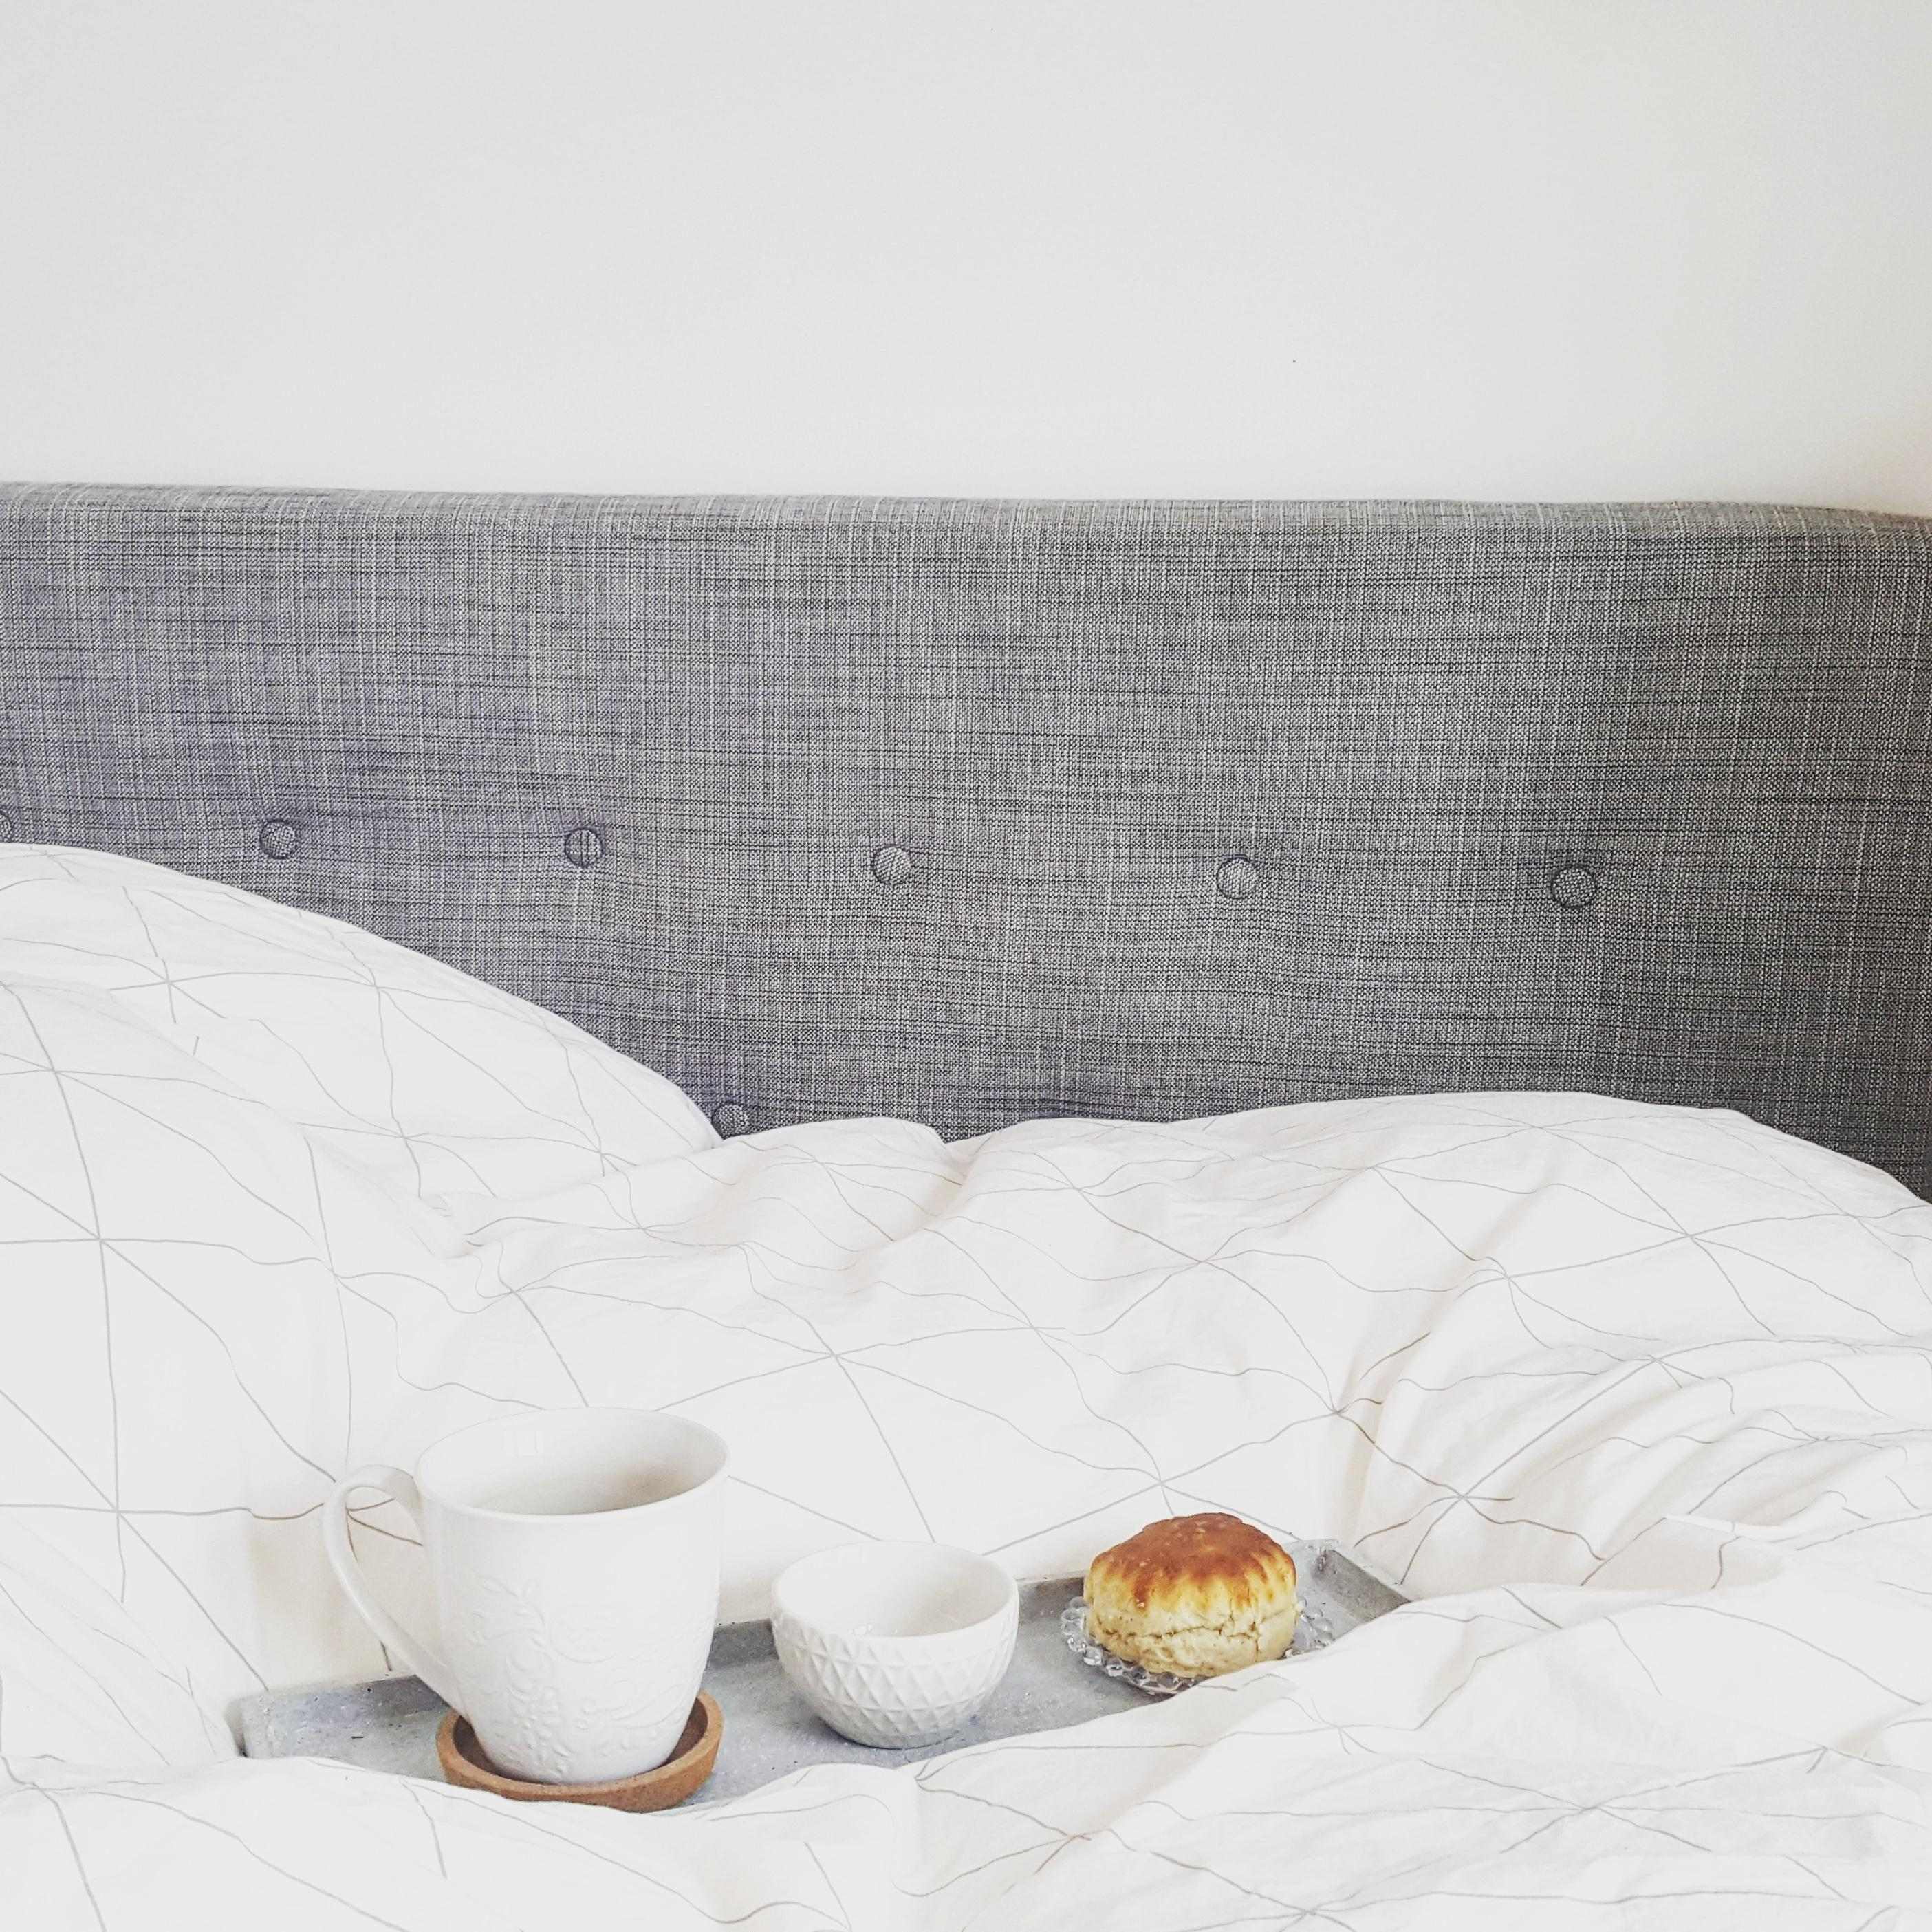 Sundays are for breakfast in bed #schlafzimmer #bedroom #boxspring #meinikea